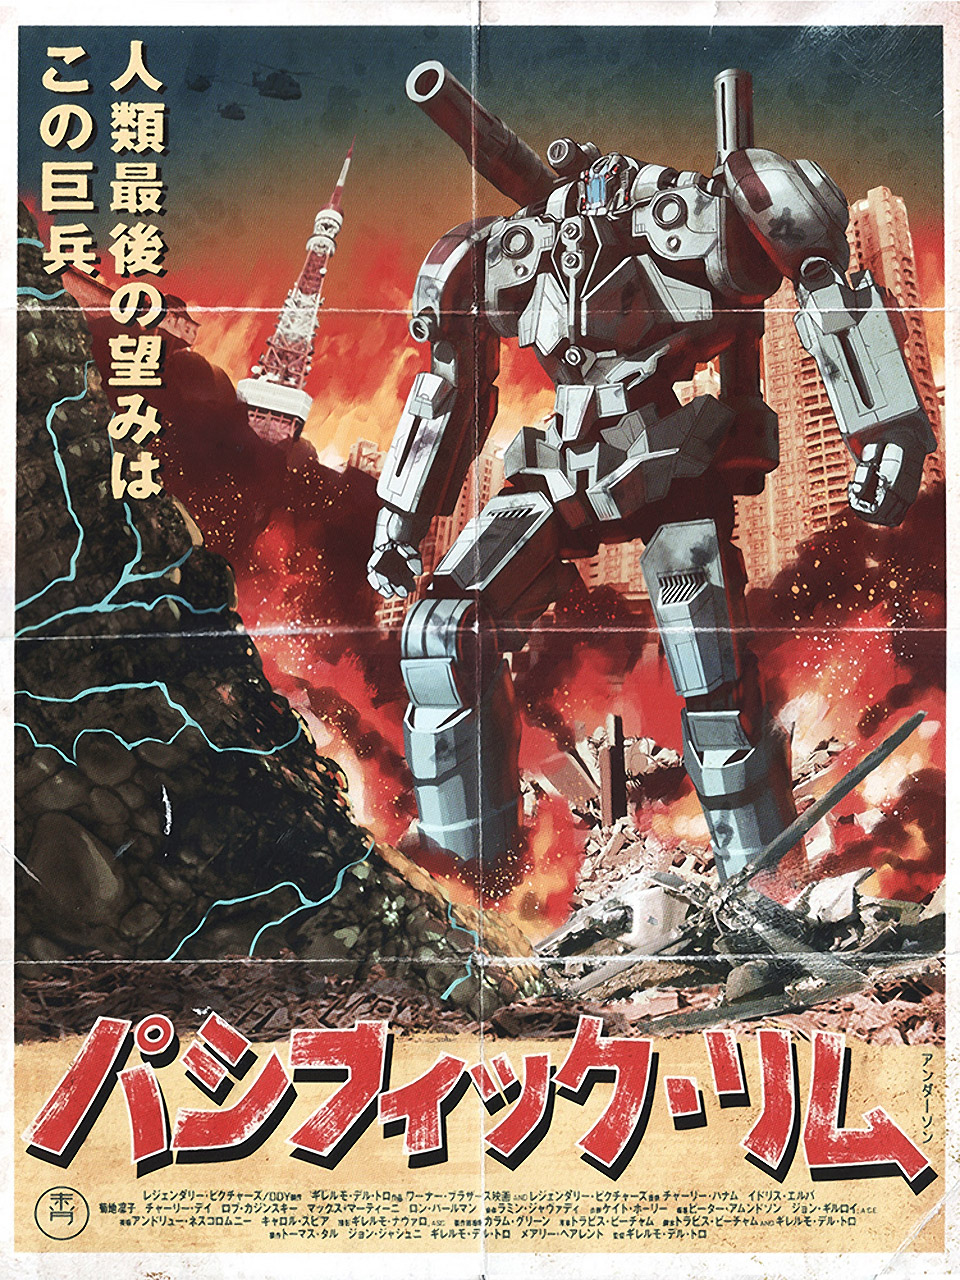 Terrific Toho-Style Vintage Pacific Rim Movie Posters